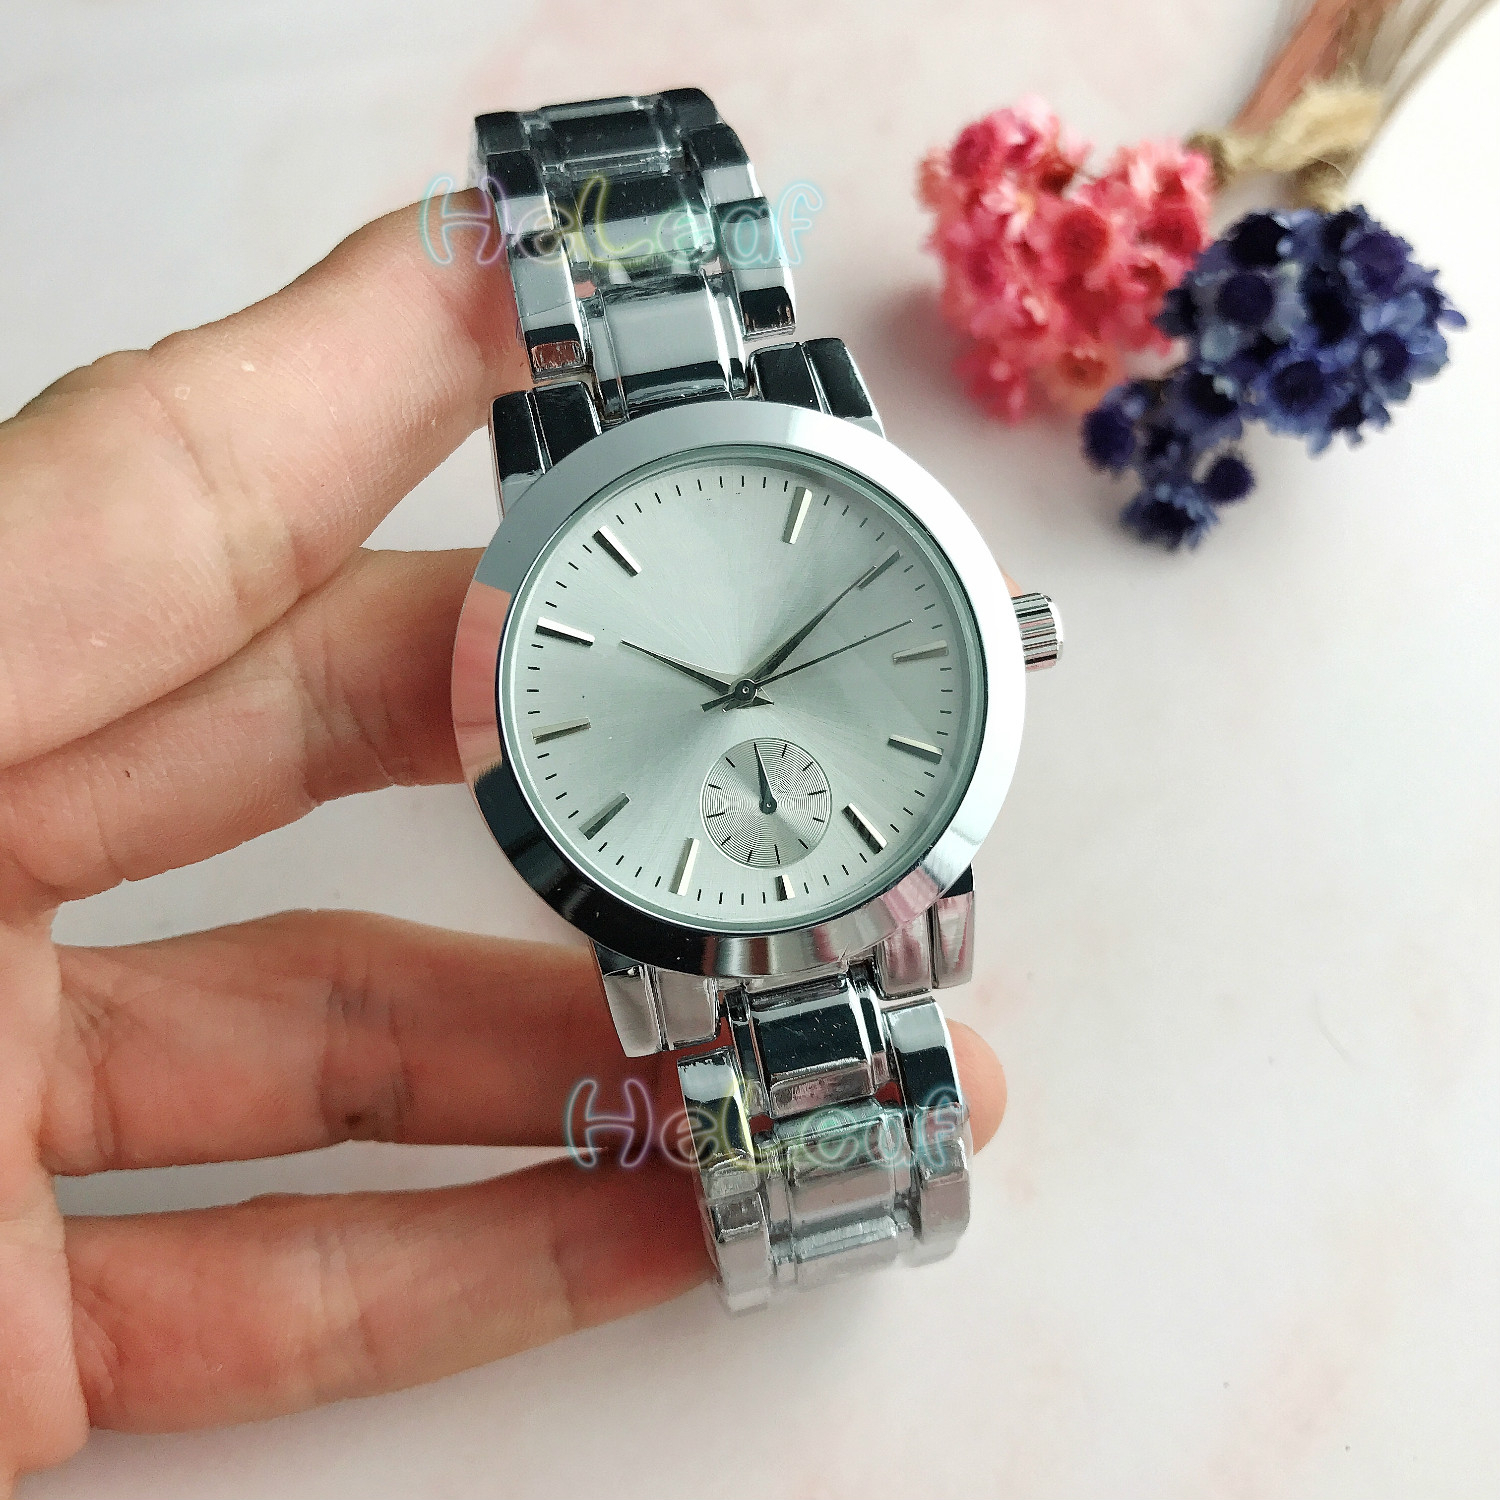 Luxury Brands Hot Sale Ladies Watches Silver Gold Steel Quartz Watch Female Clock Montre Femme Relogio Feminino Gift Reloj Mujer